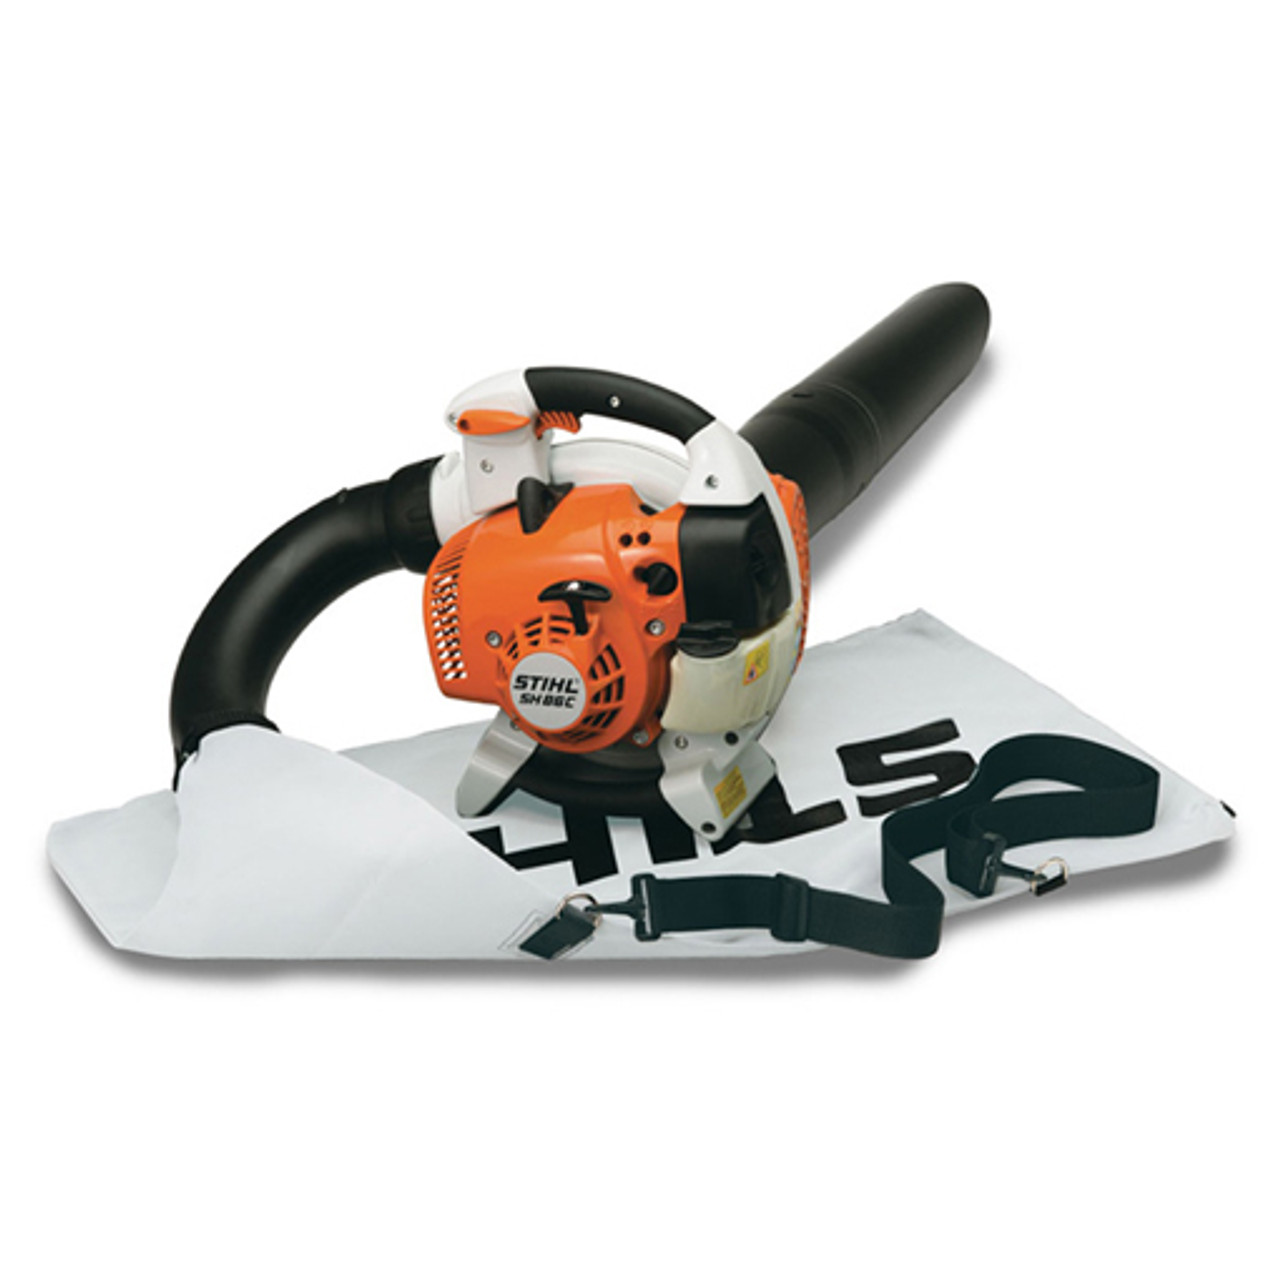 STIHL SH 86 C-E 27.2cc 444 CFM Vacuum Shredder/LeafBlower w/ Easy2Start Image